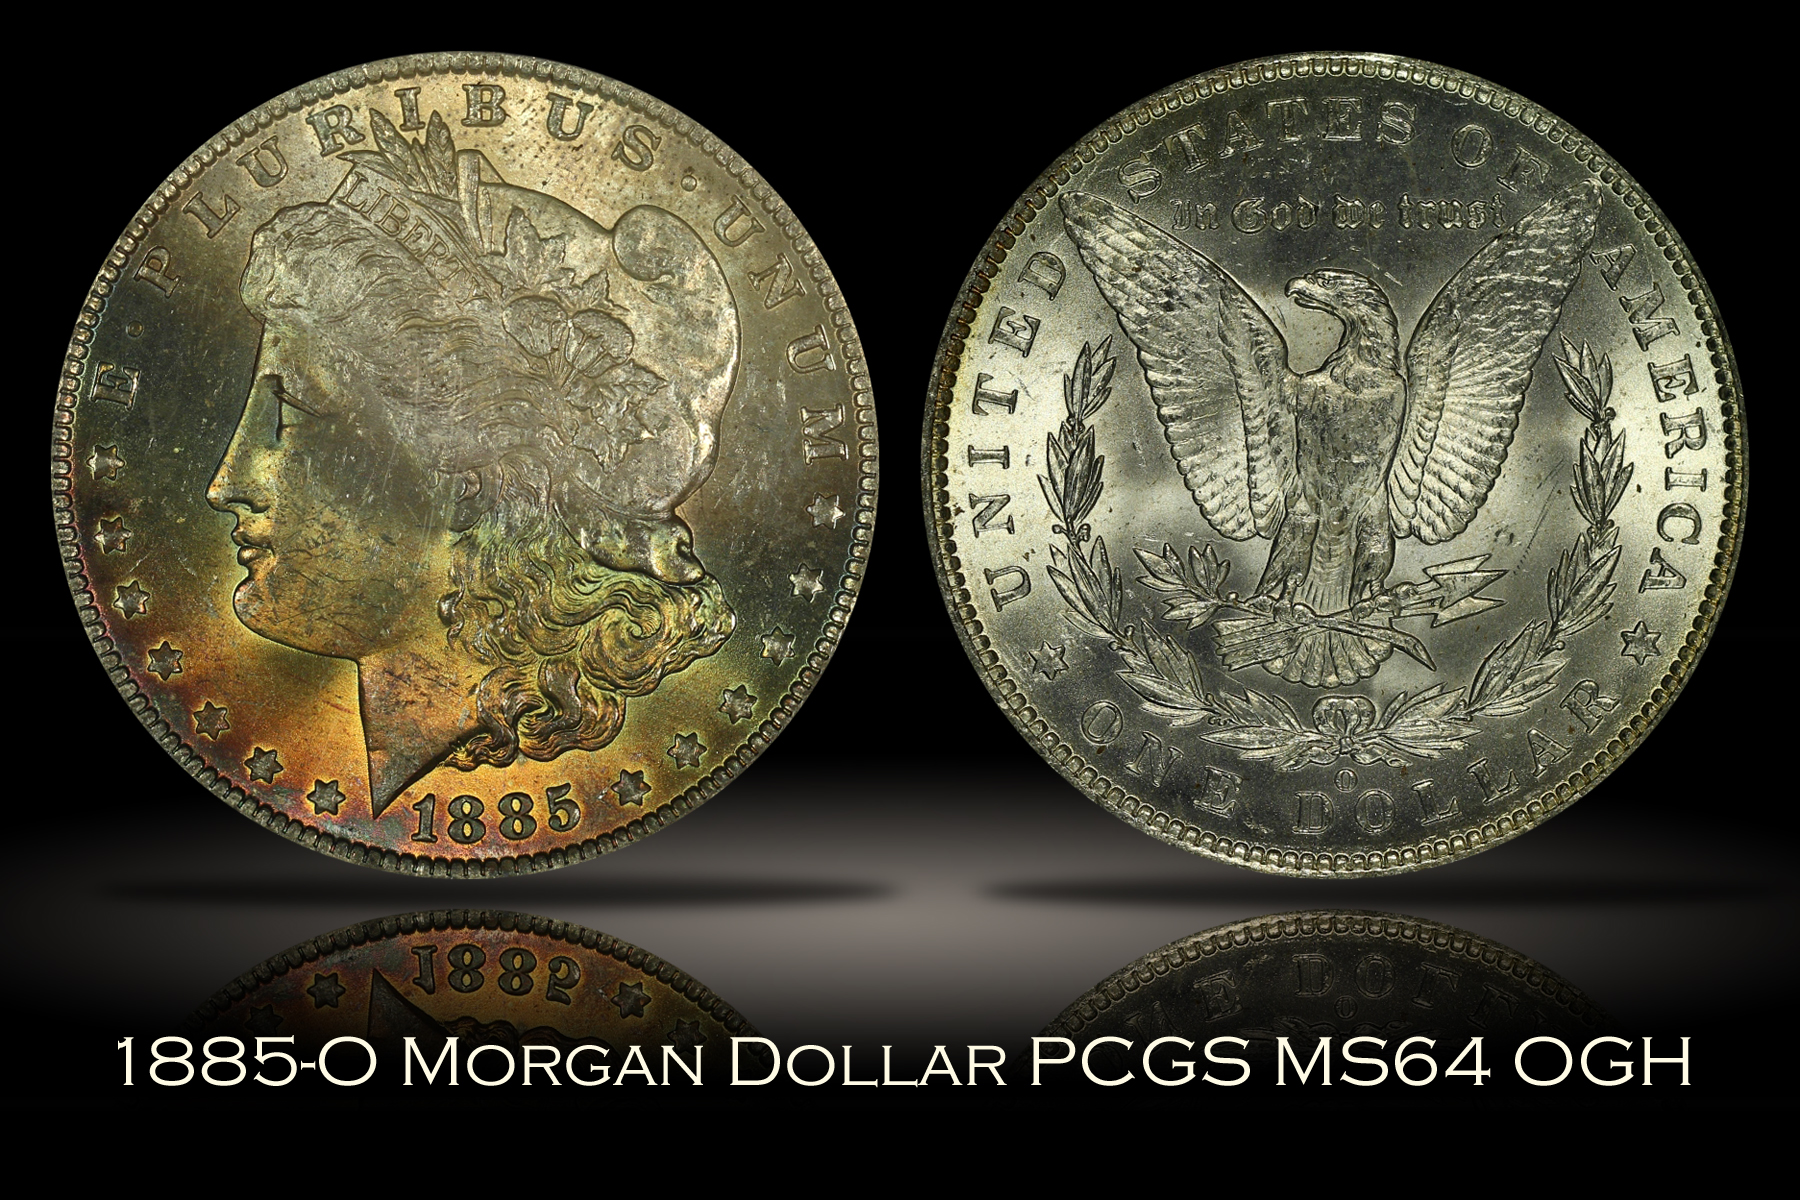 1885-O Morgan Dollar PCGS MS64 OGH